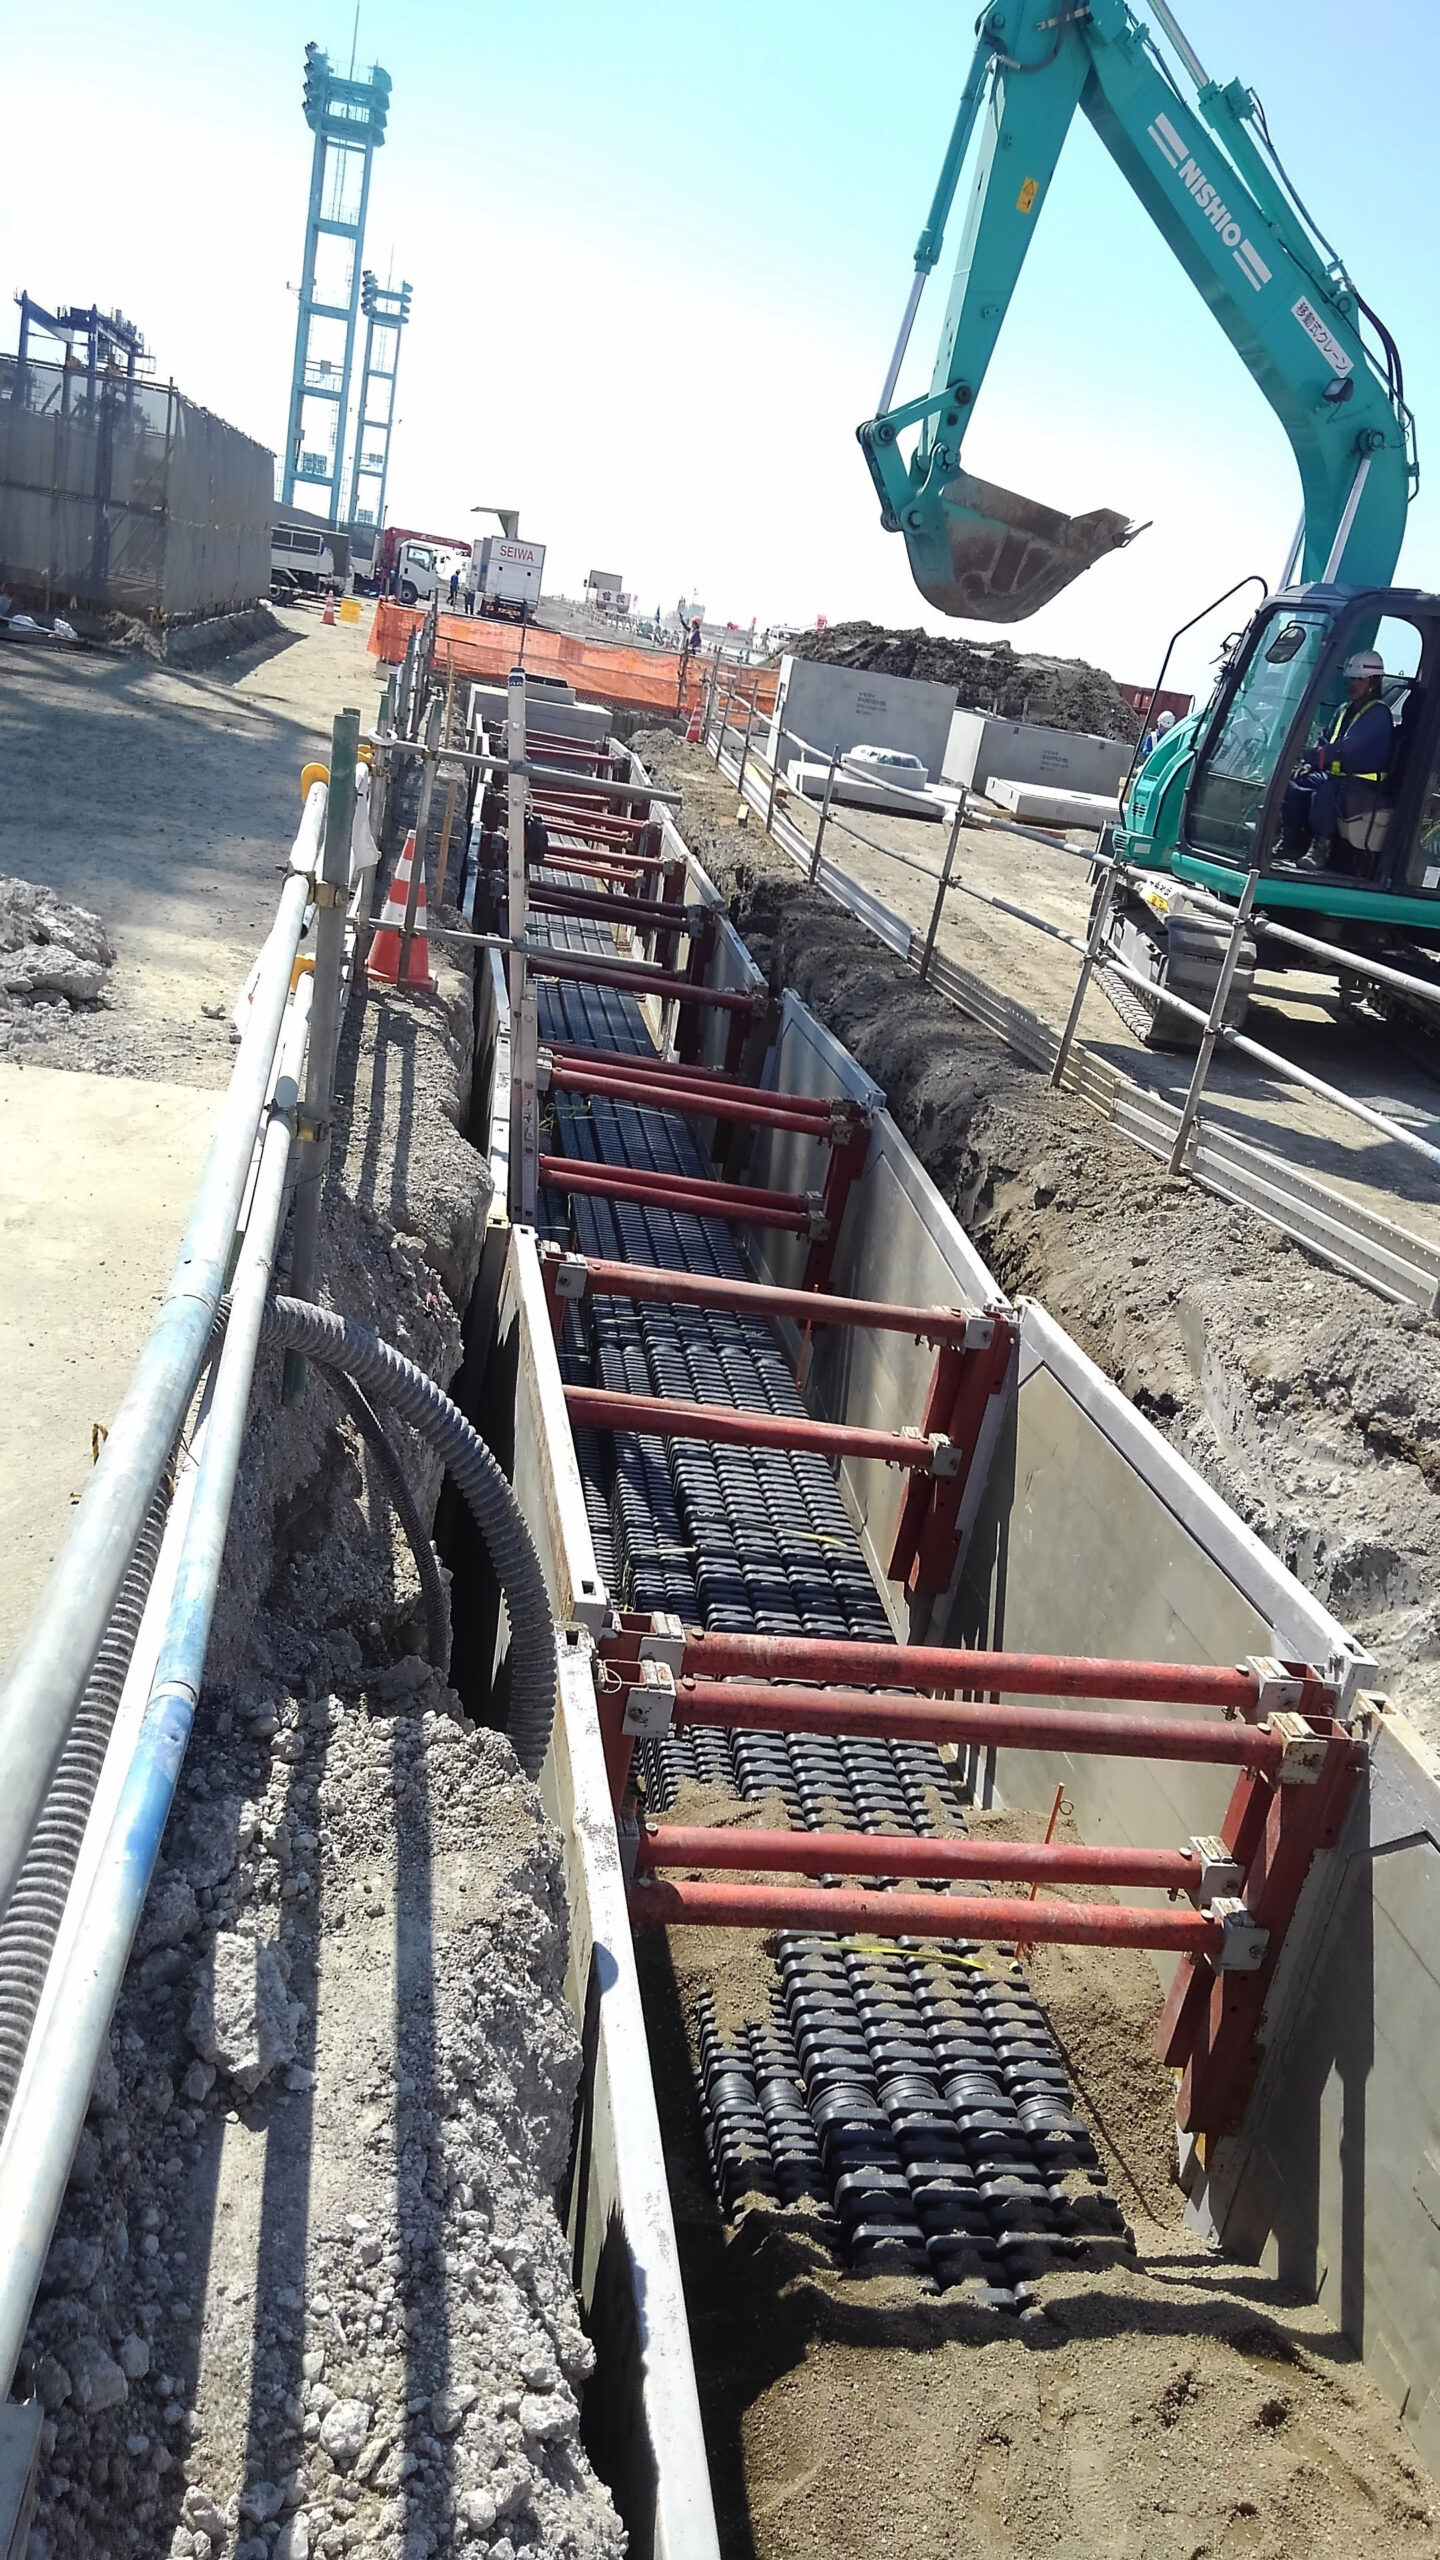 Furukawa EFLEX Square cable duct installed at seaport - plastic buried cable route